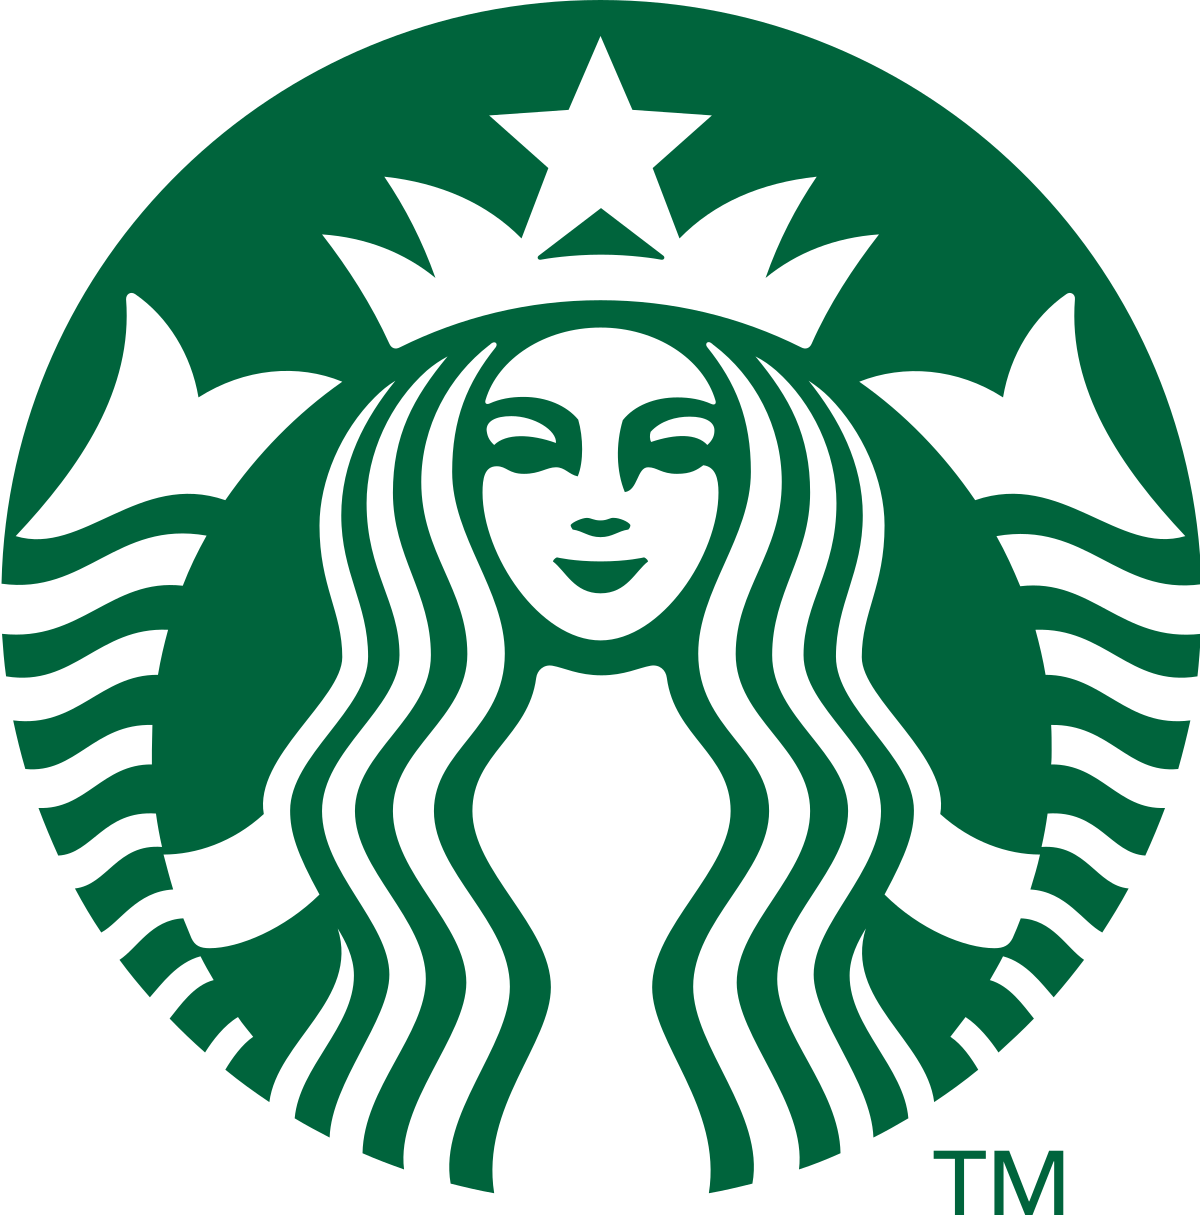 starbucks vector app